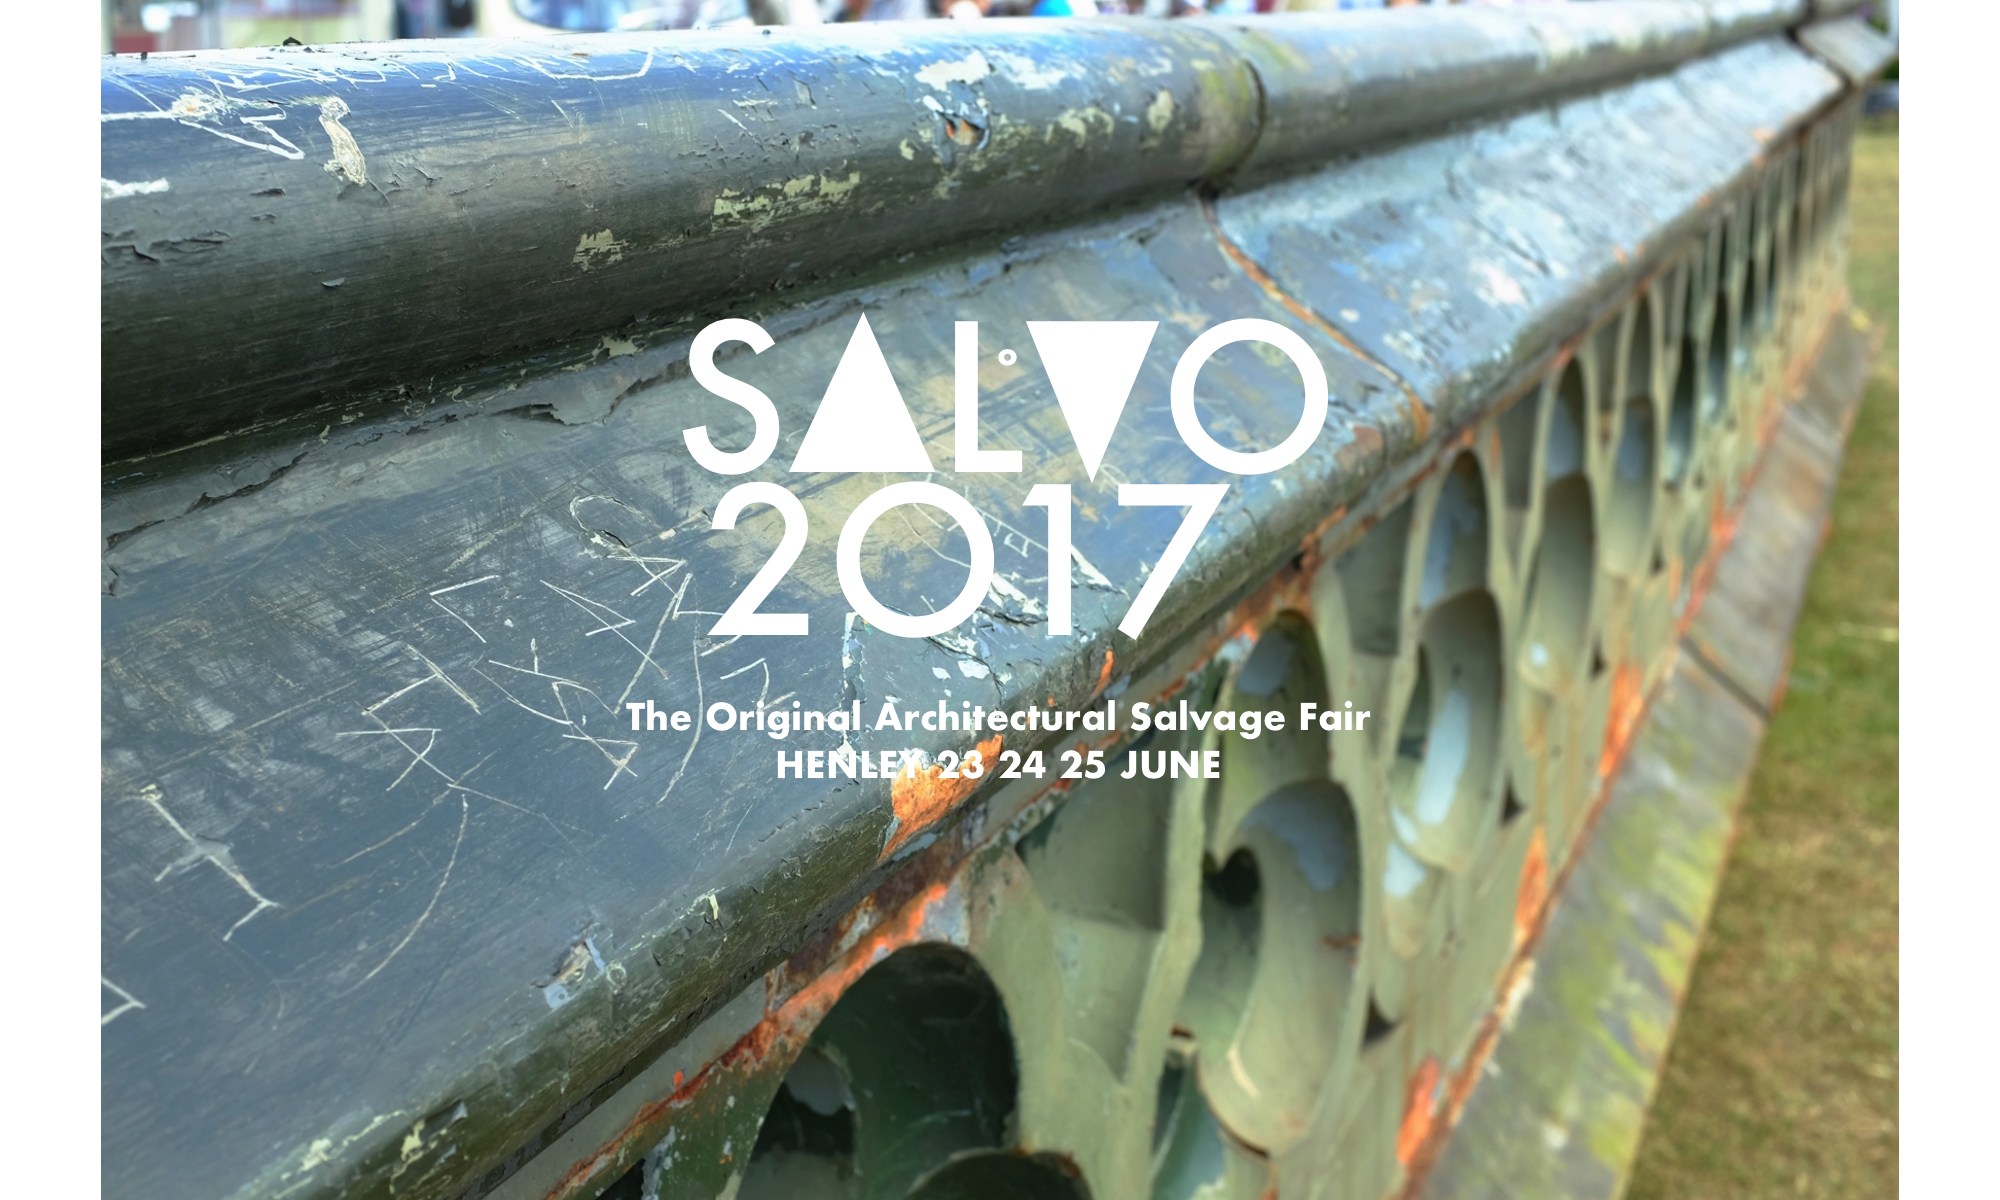 Salvo Fair 2017: Architectural Salvage Fair